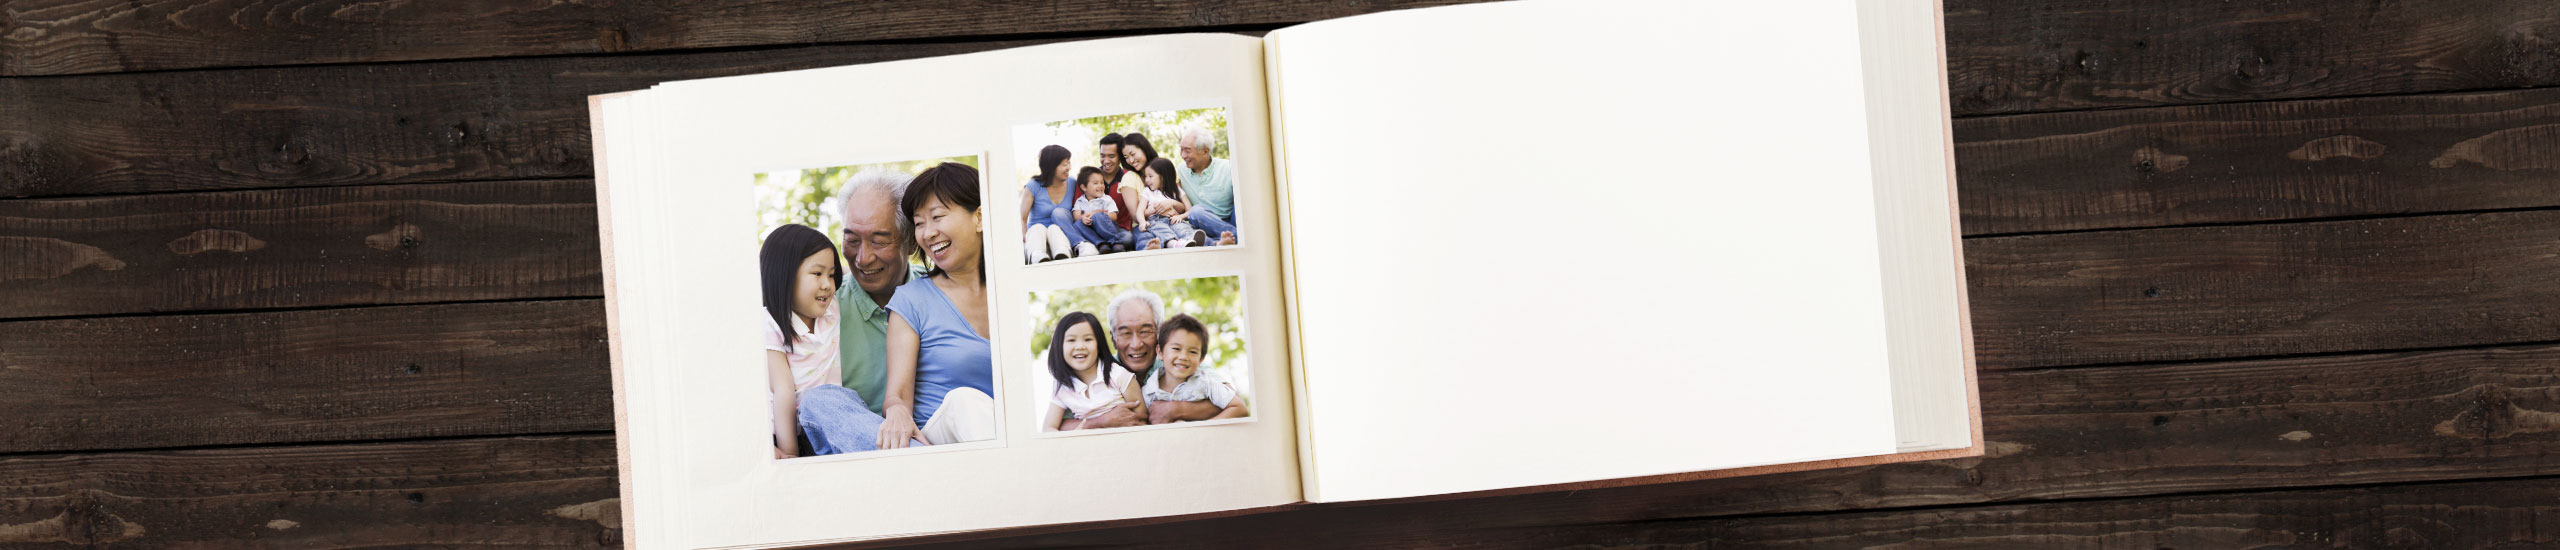 Care At Home Services Photobook Smiling